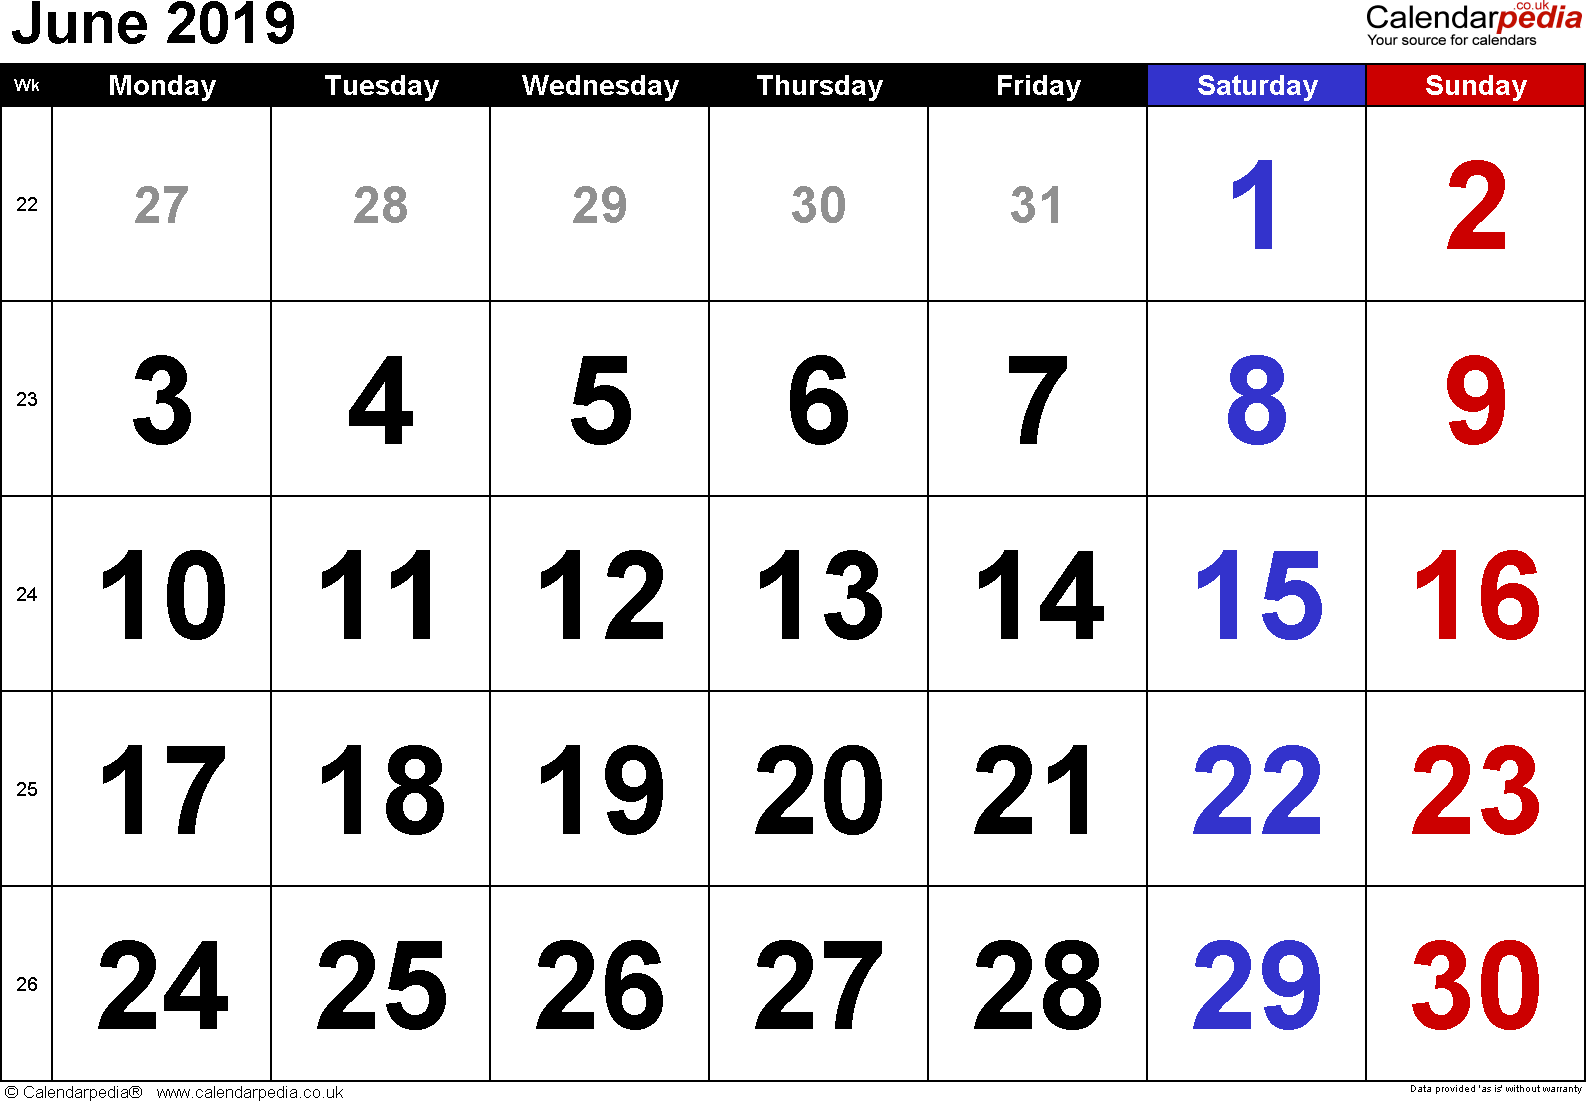 Calendar June 2019, landscape orientation, large numerals, 1 page, with UK bank holidays and week numbers